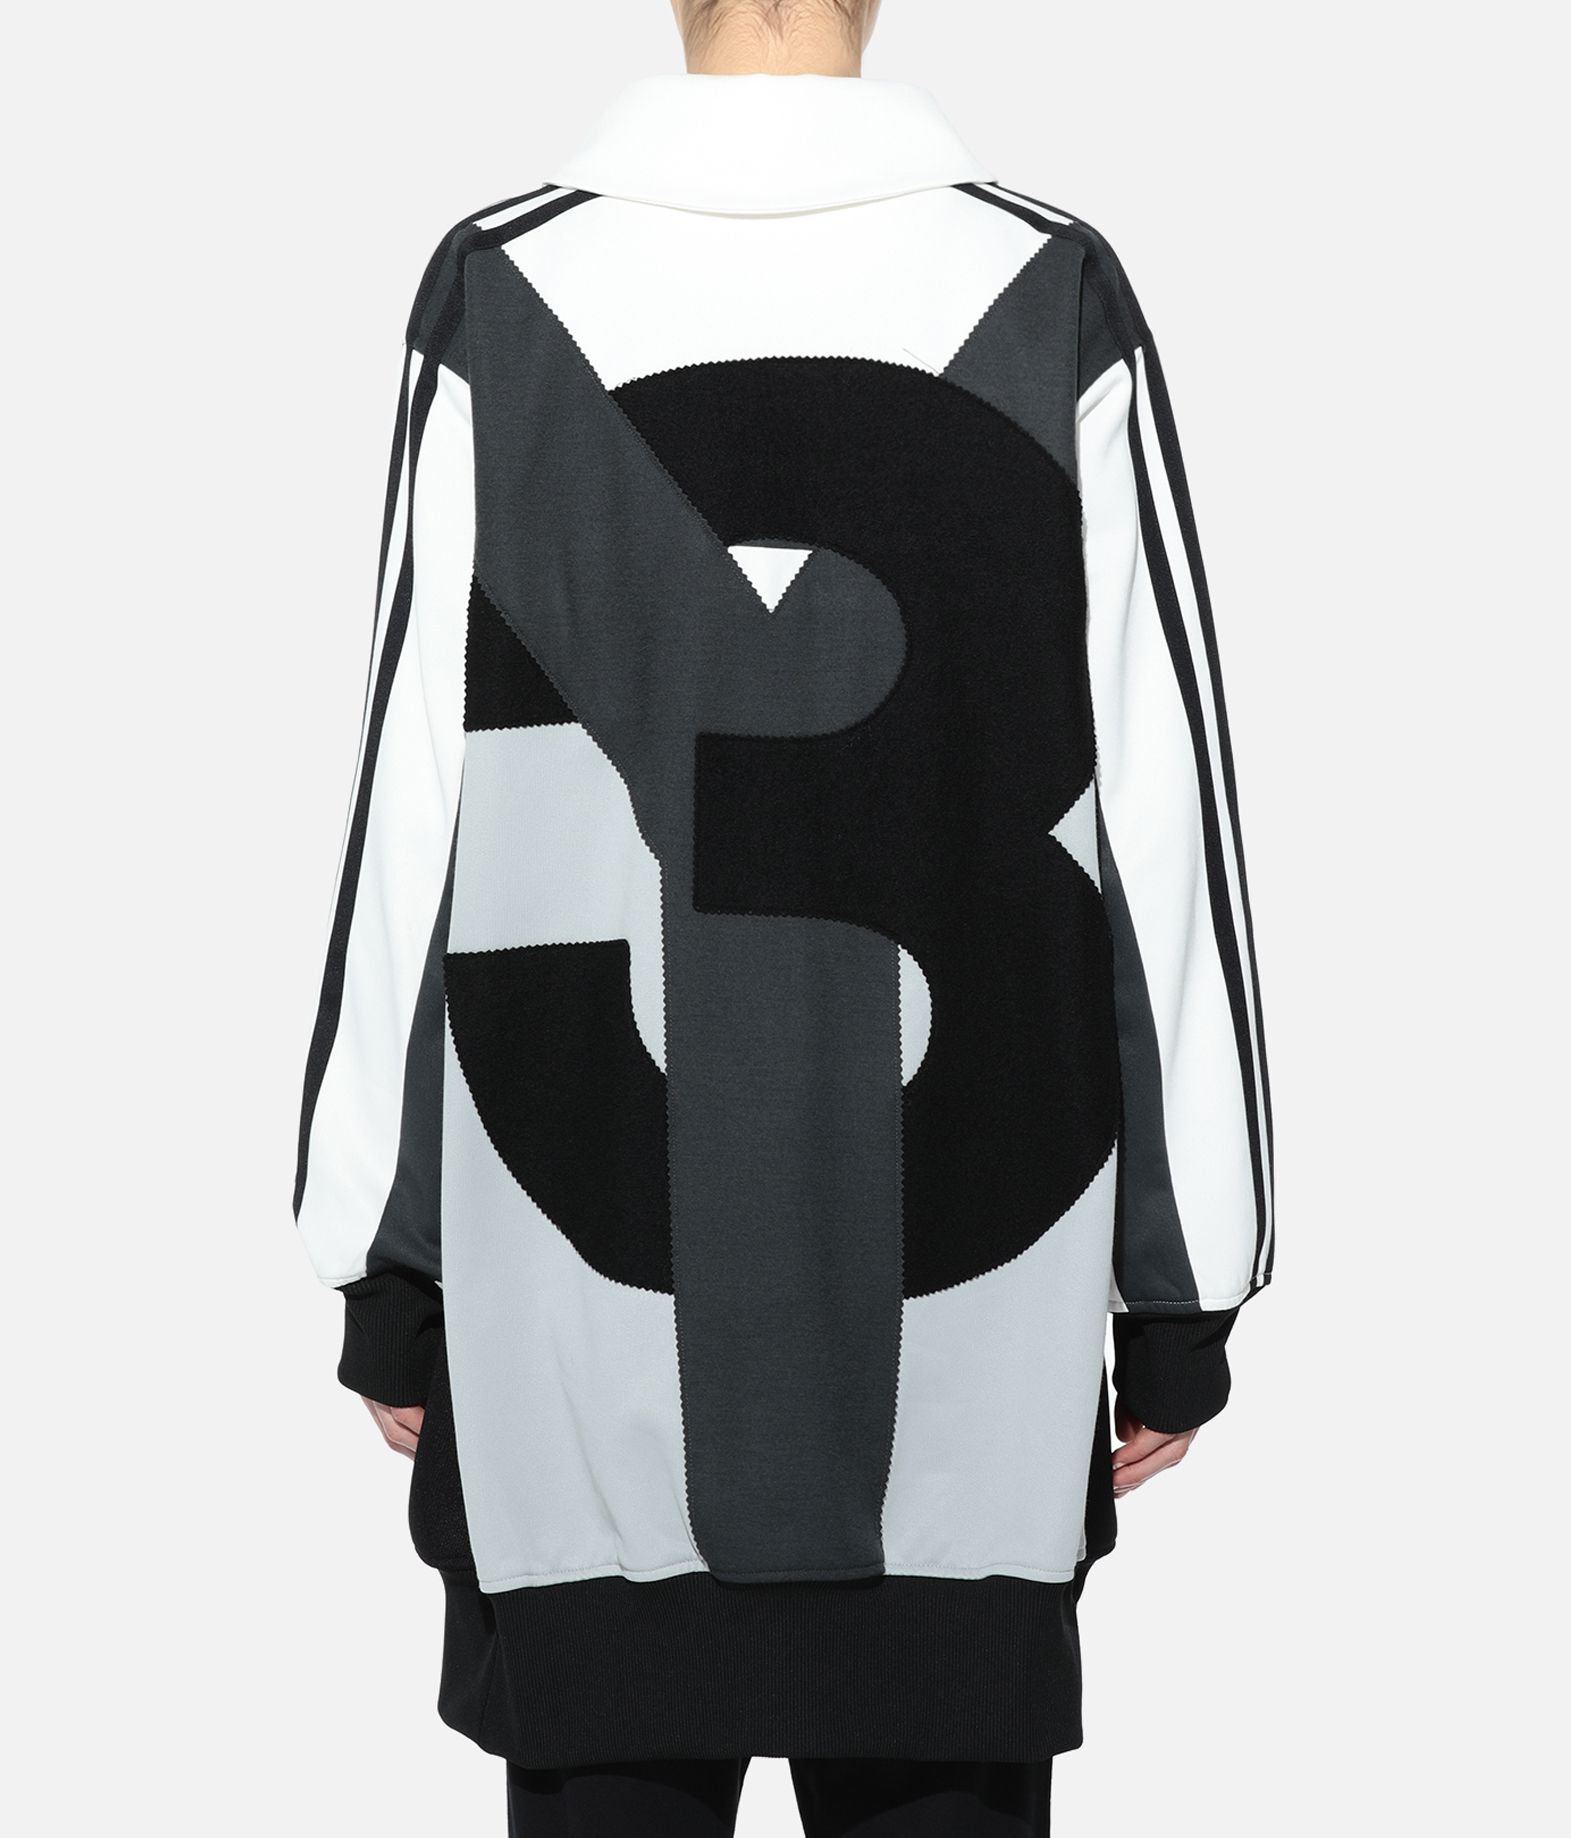 Y-3 Y-3 OVERSIZED GRAPHIC TRACK TOP Track top Woman d